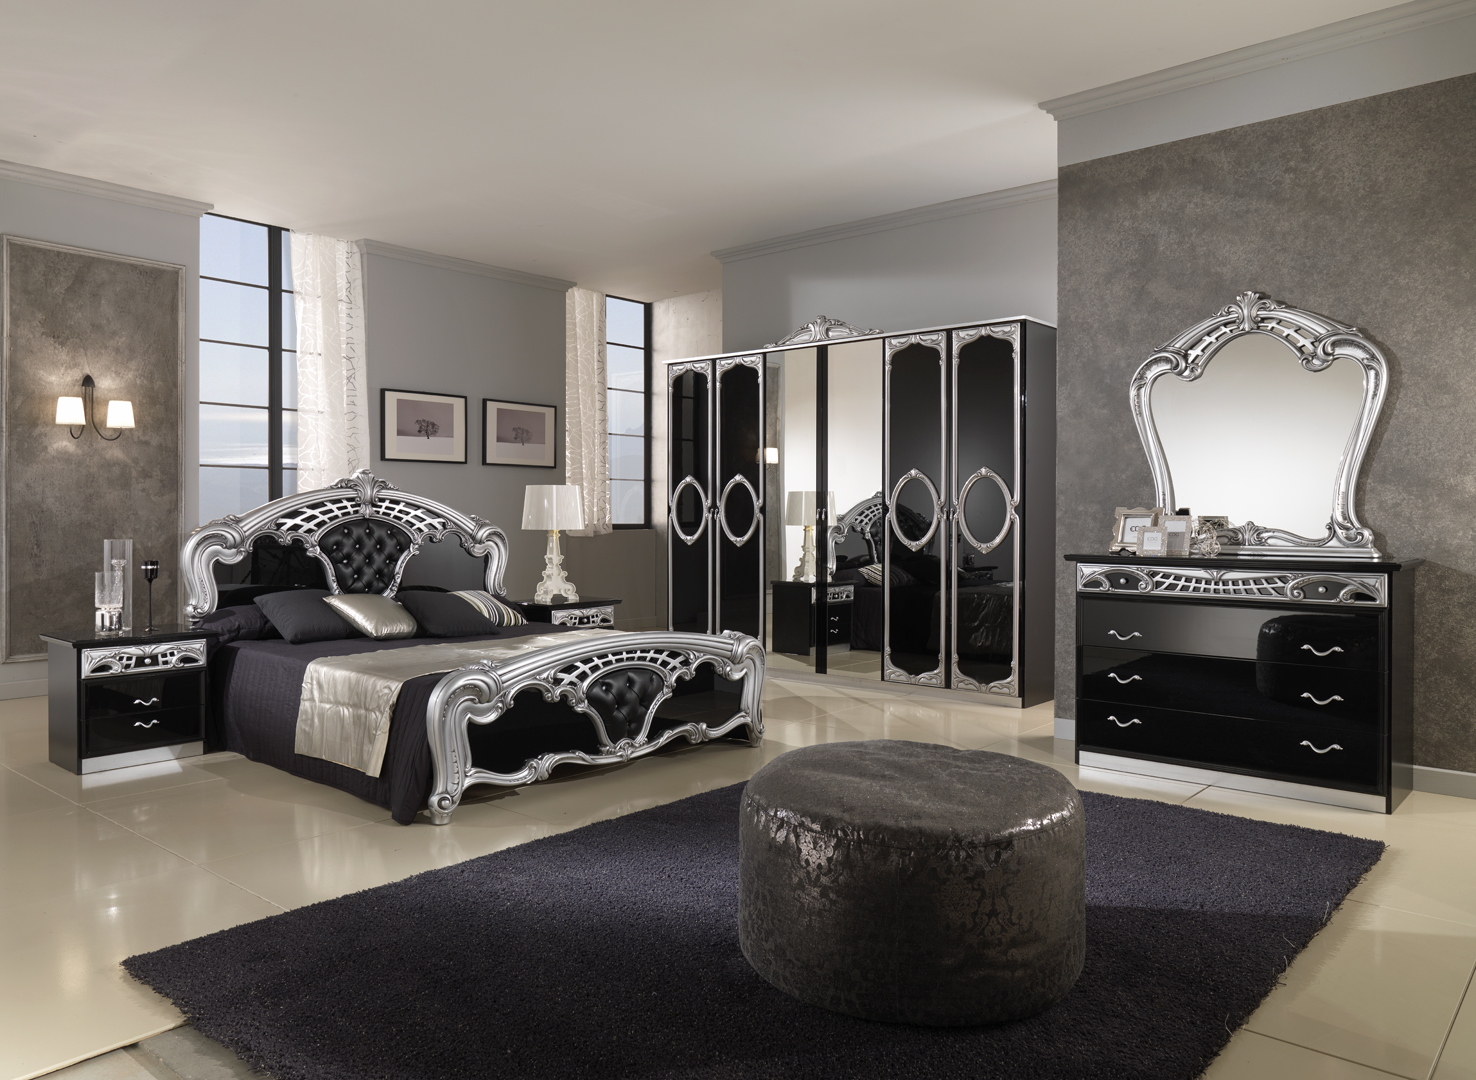 Featured Image of Gothic Bedroom Furniture Decor For Large Interior